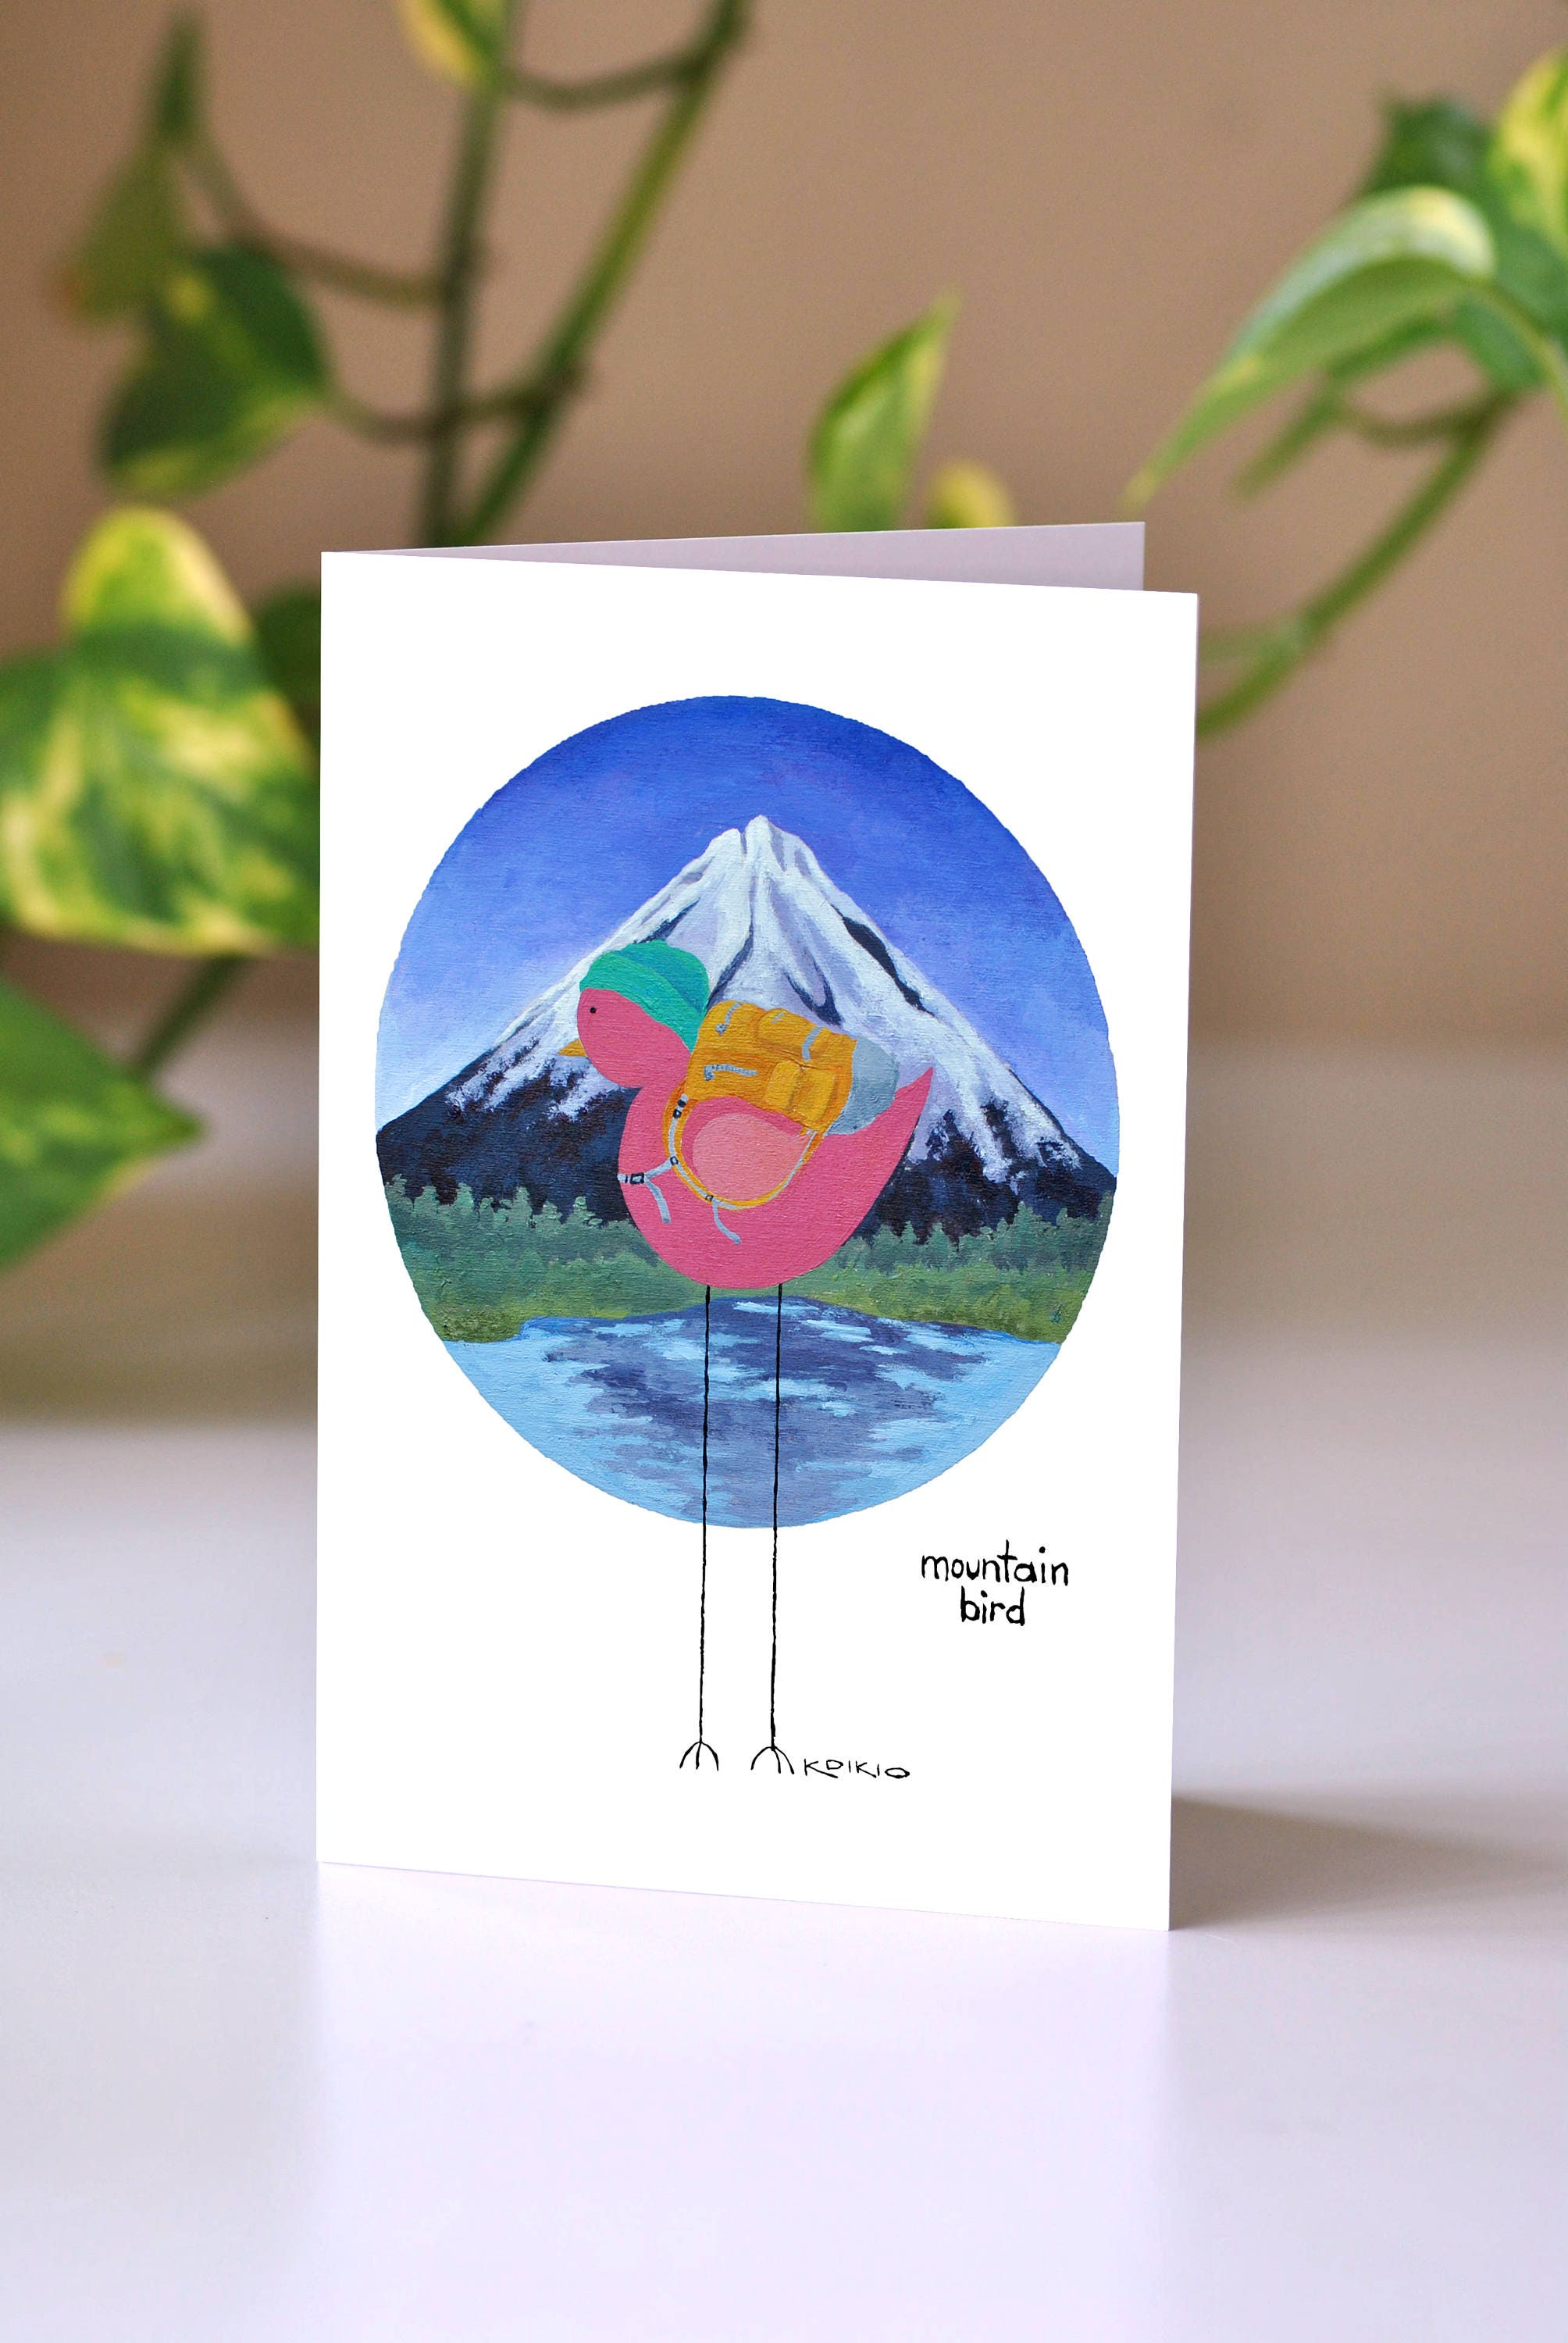 Mountain bird greeting card outdoorsy card birthday card for description introducing mountain bird greeting card kristyandbryce Image collections